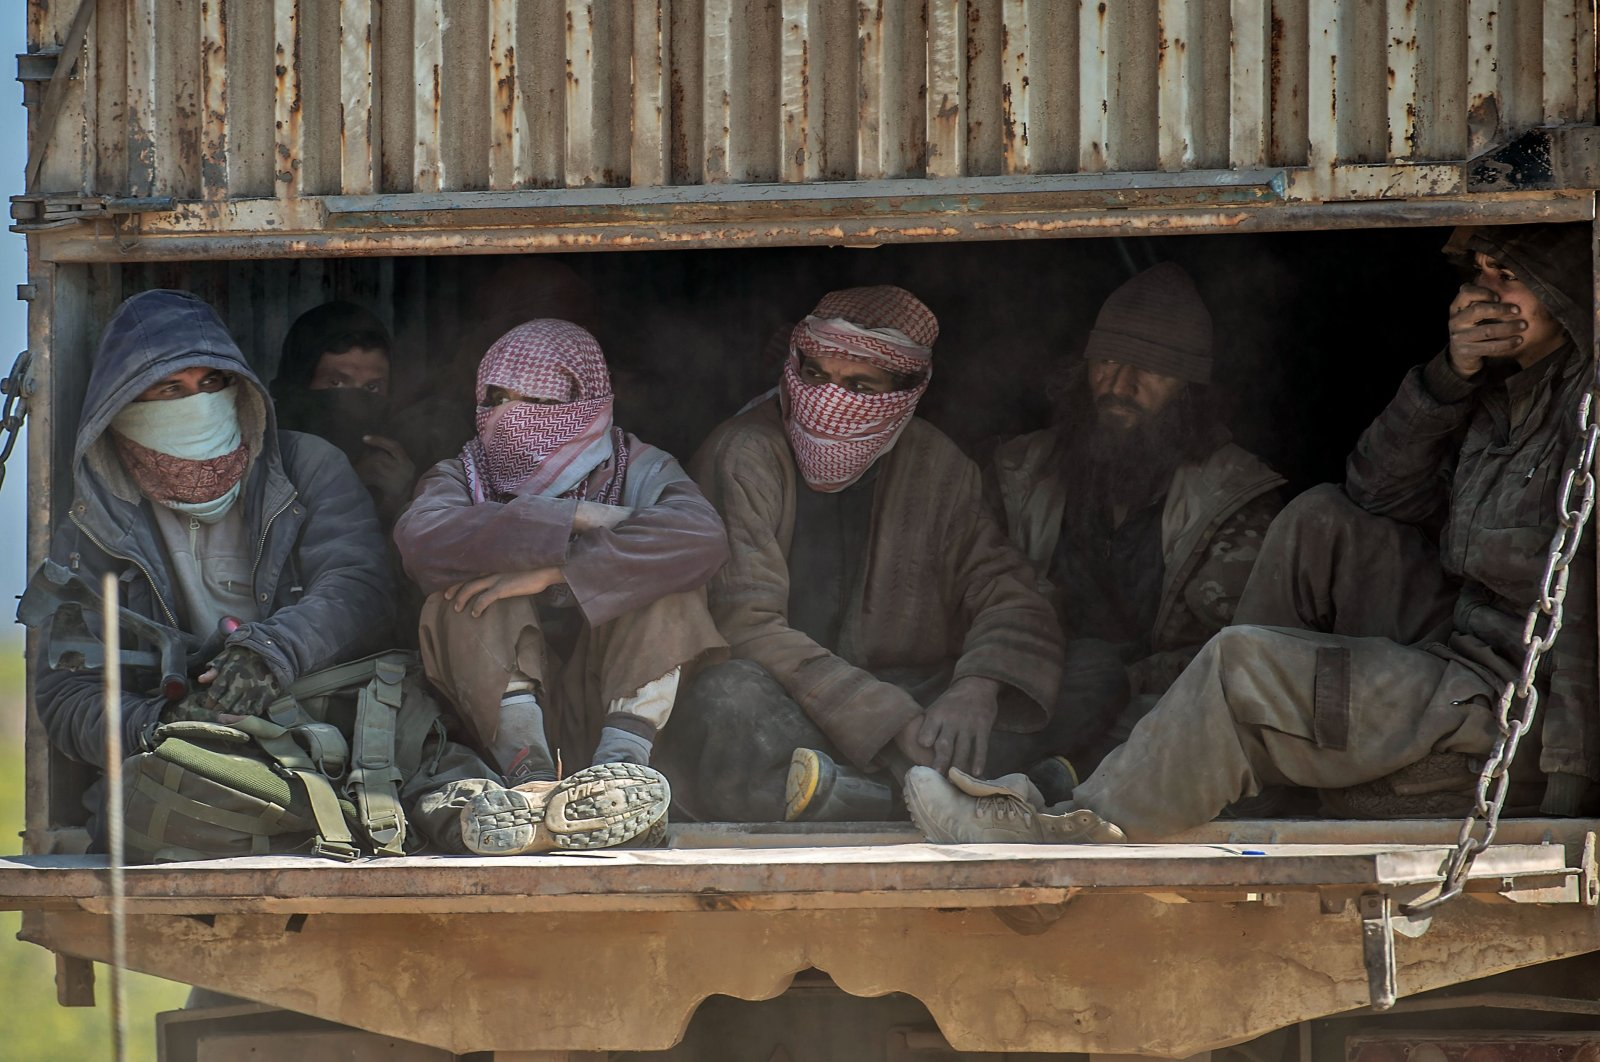 A truck carrying men, identified as Daesh members, being transported out of the terrorist organization's last holdout of Baghouz in Syria's northern Deir el-Zour province, Feb.20, 2019. (AFP)